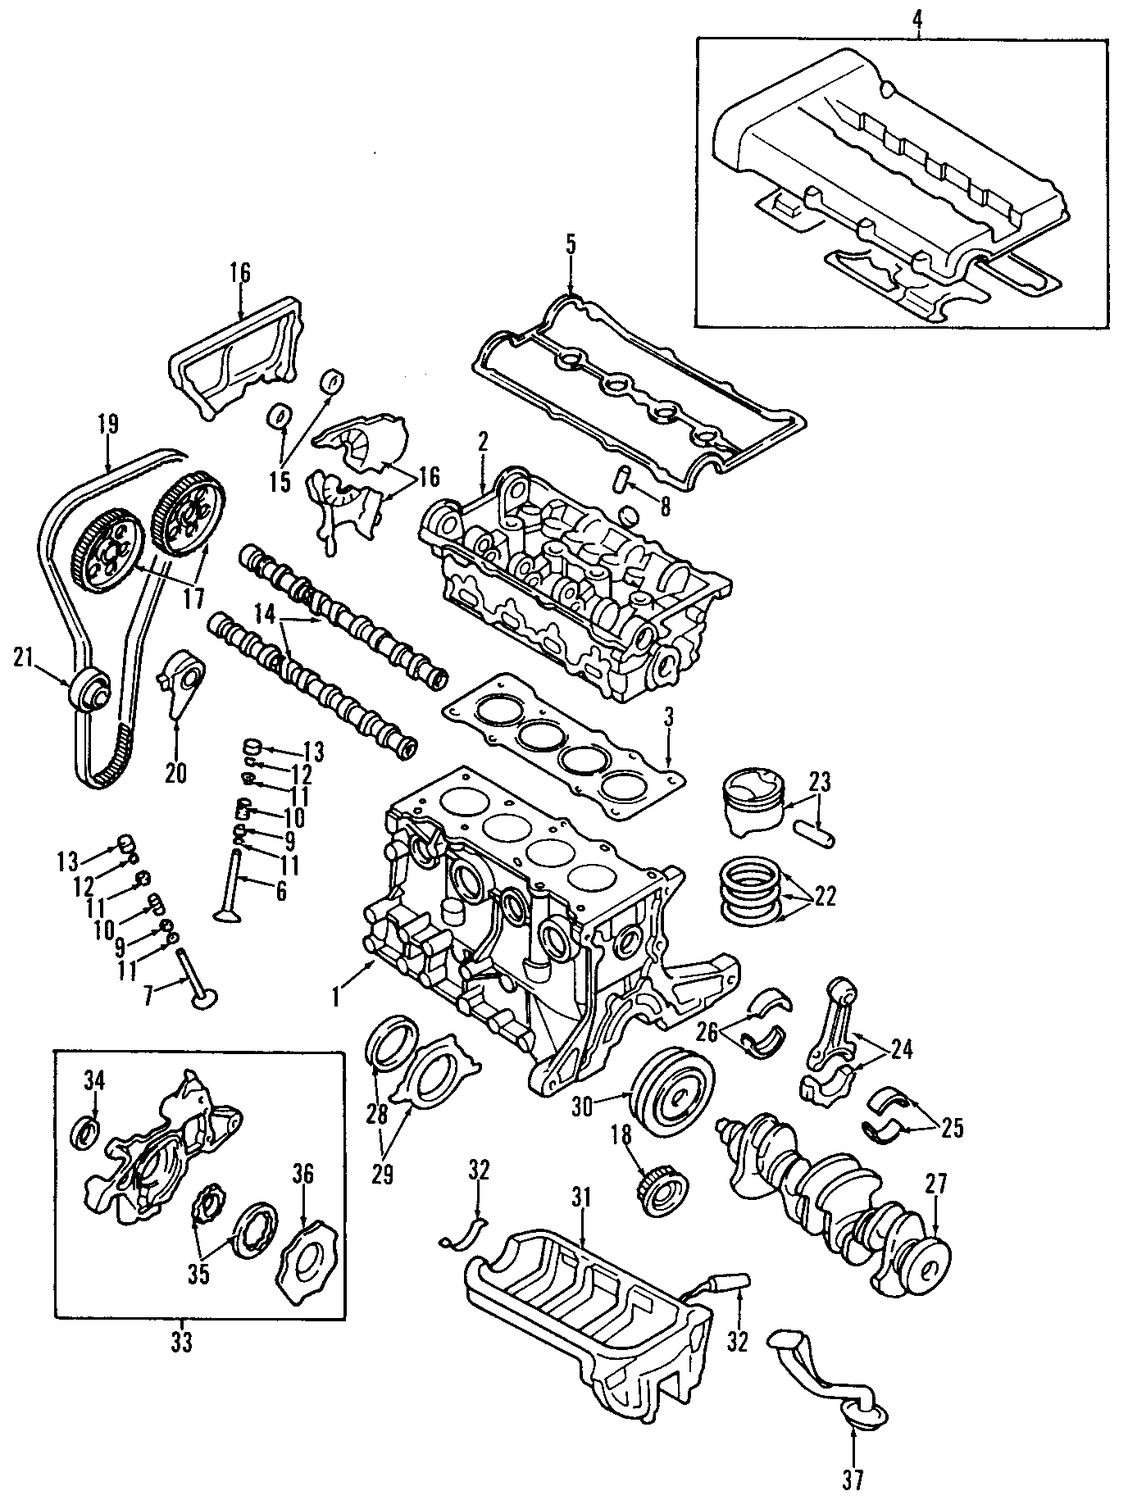 Yanmar L100 Wiring Diagram : 26 Wiring Diagram Images